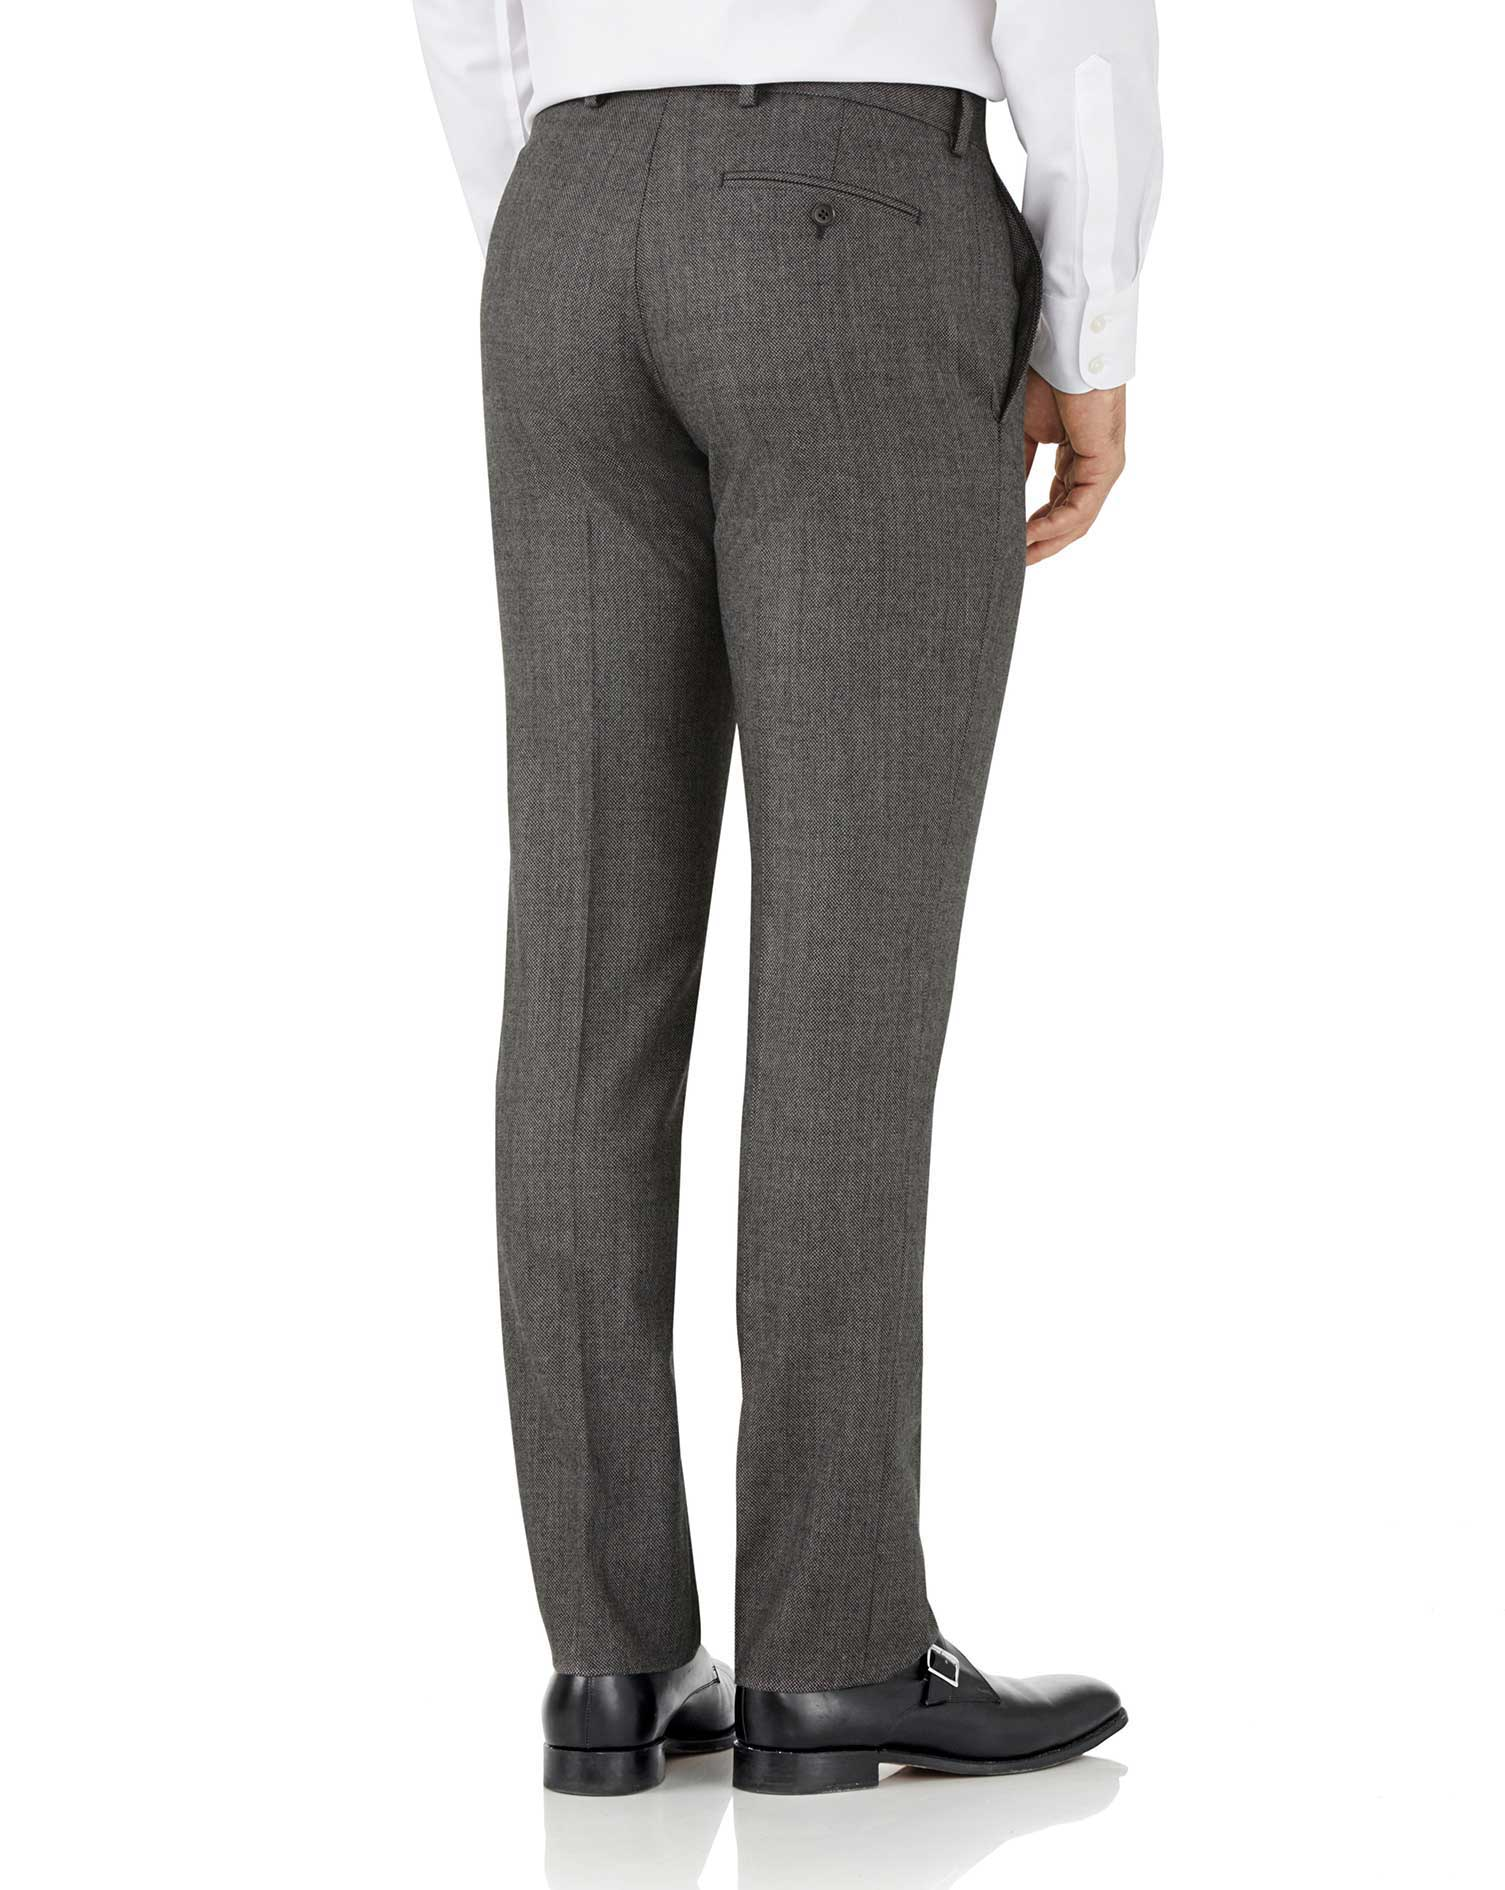 Silver slim fit flannel business suit trousers